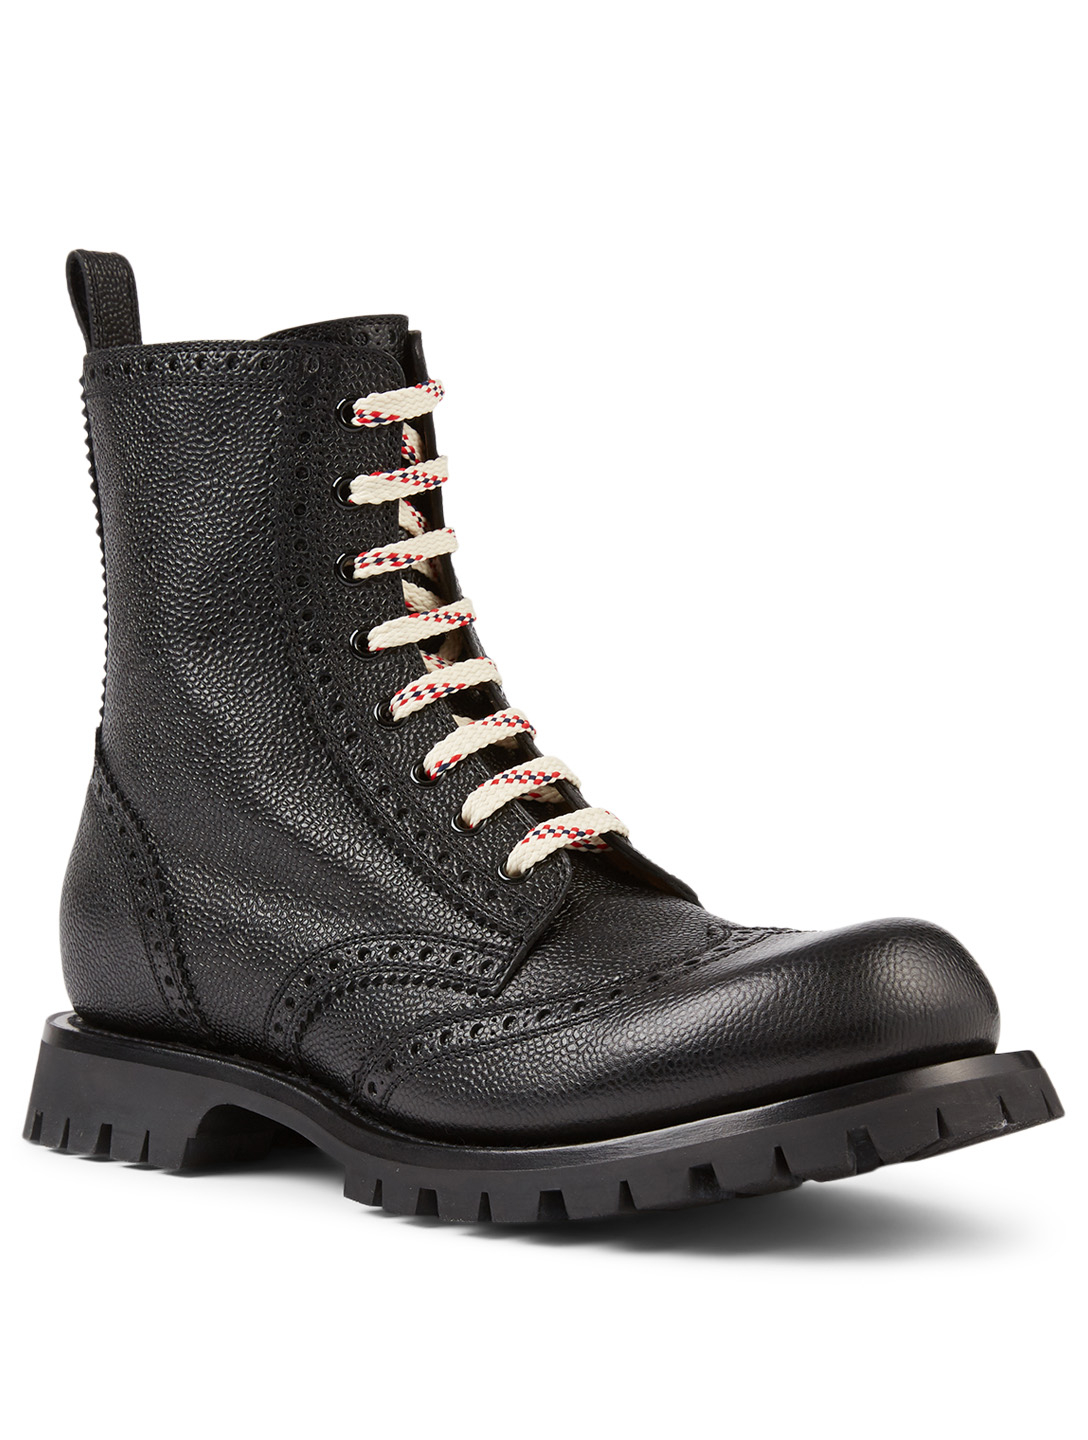 GUCCI Leather Lace-up Brogue Boots Men's Black